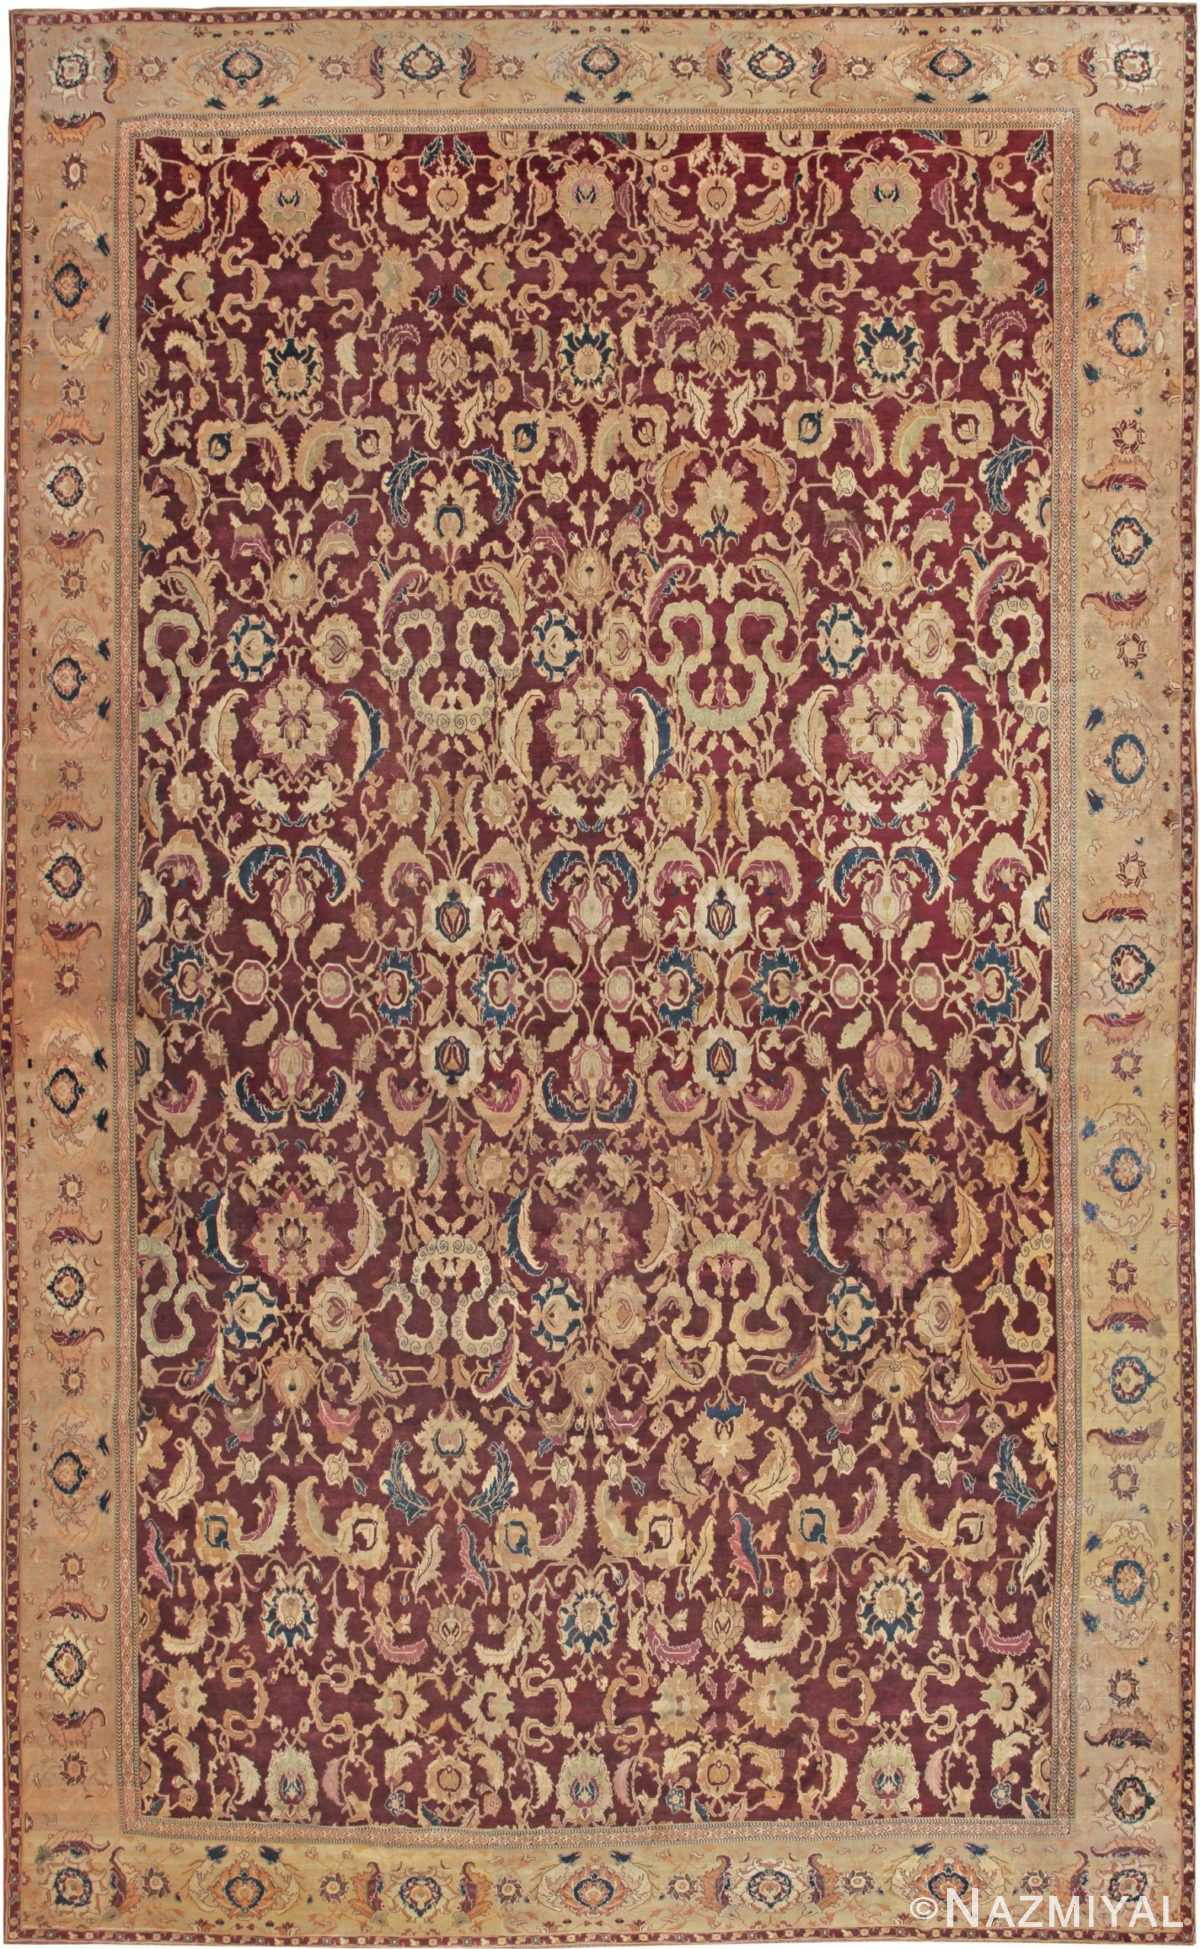 Picture of an Antique Agra Oriental Rug 44601 Nazmiyal Antique Rugs in NYC